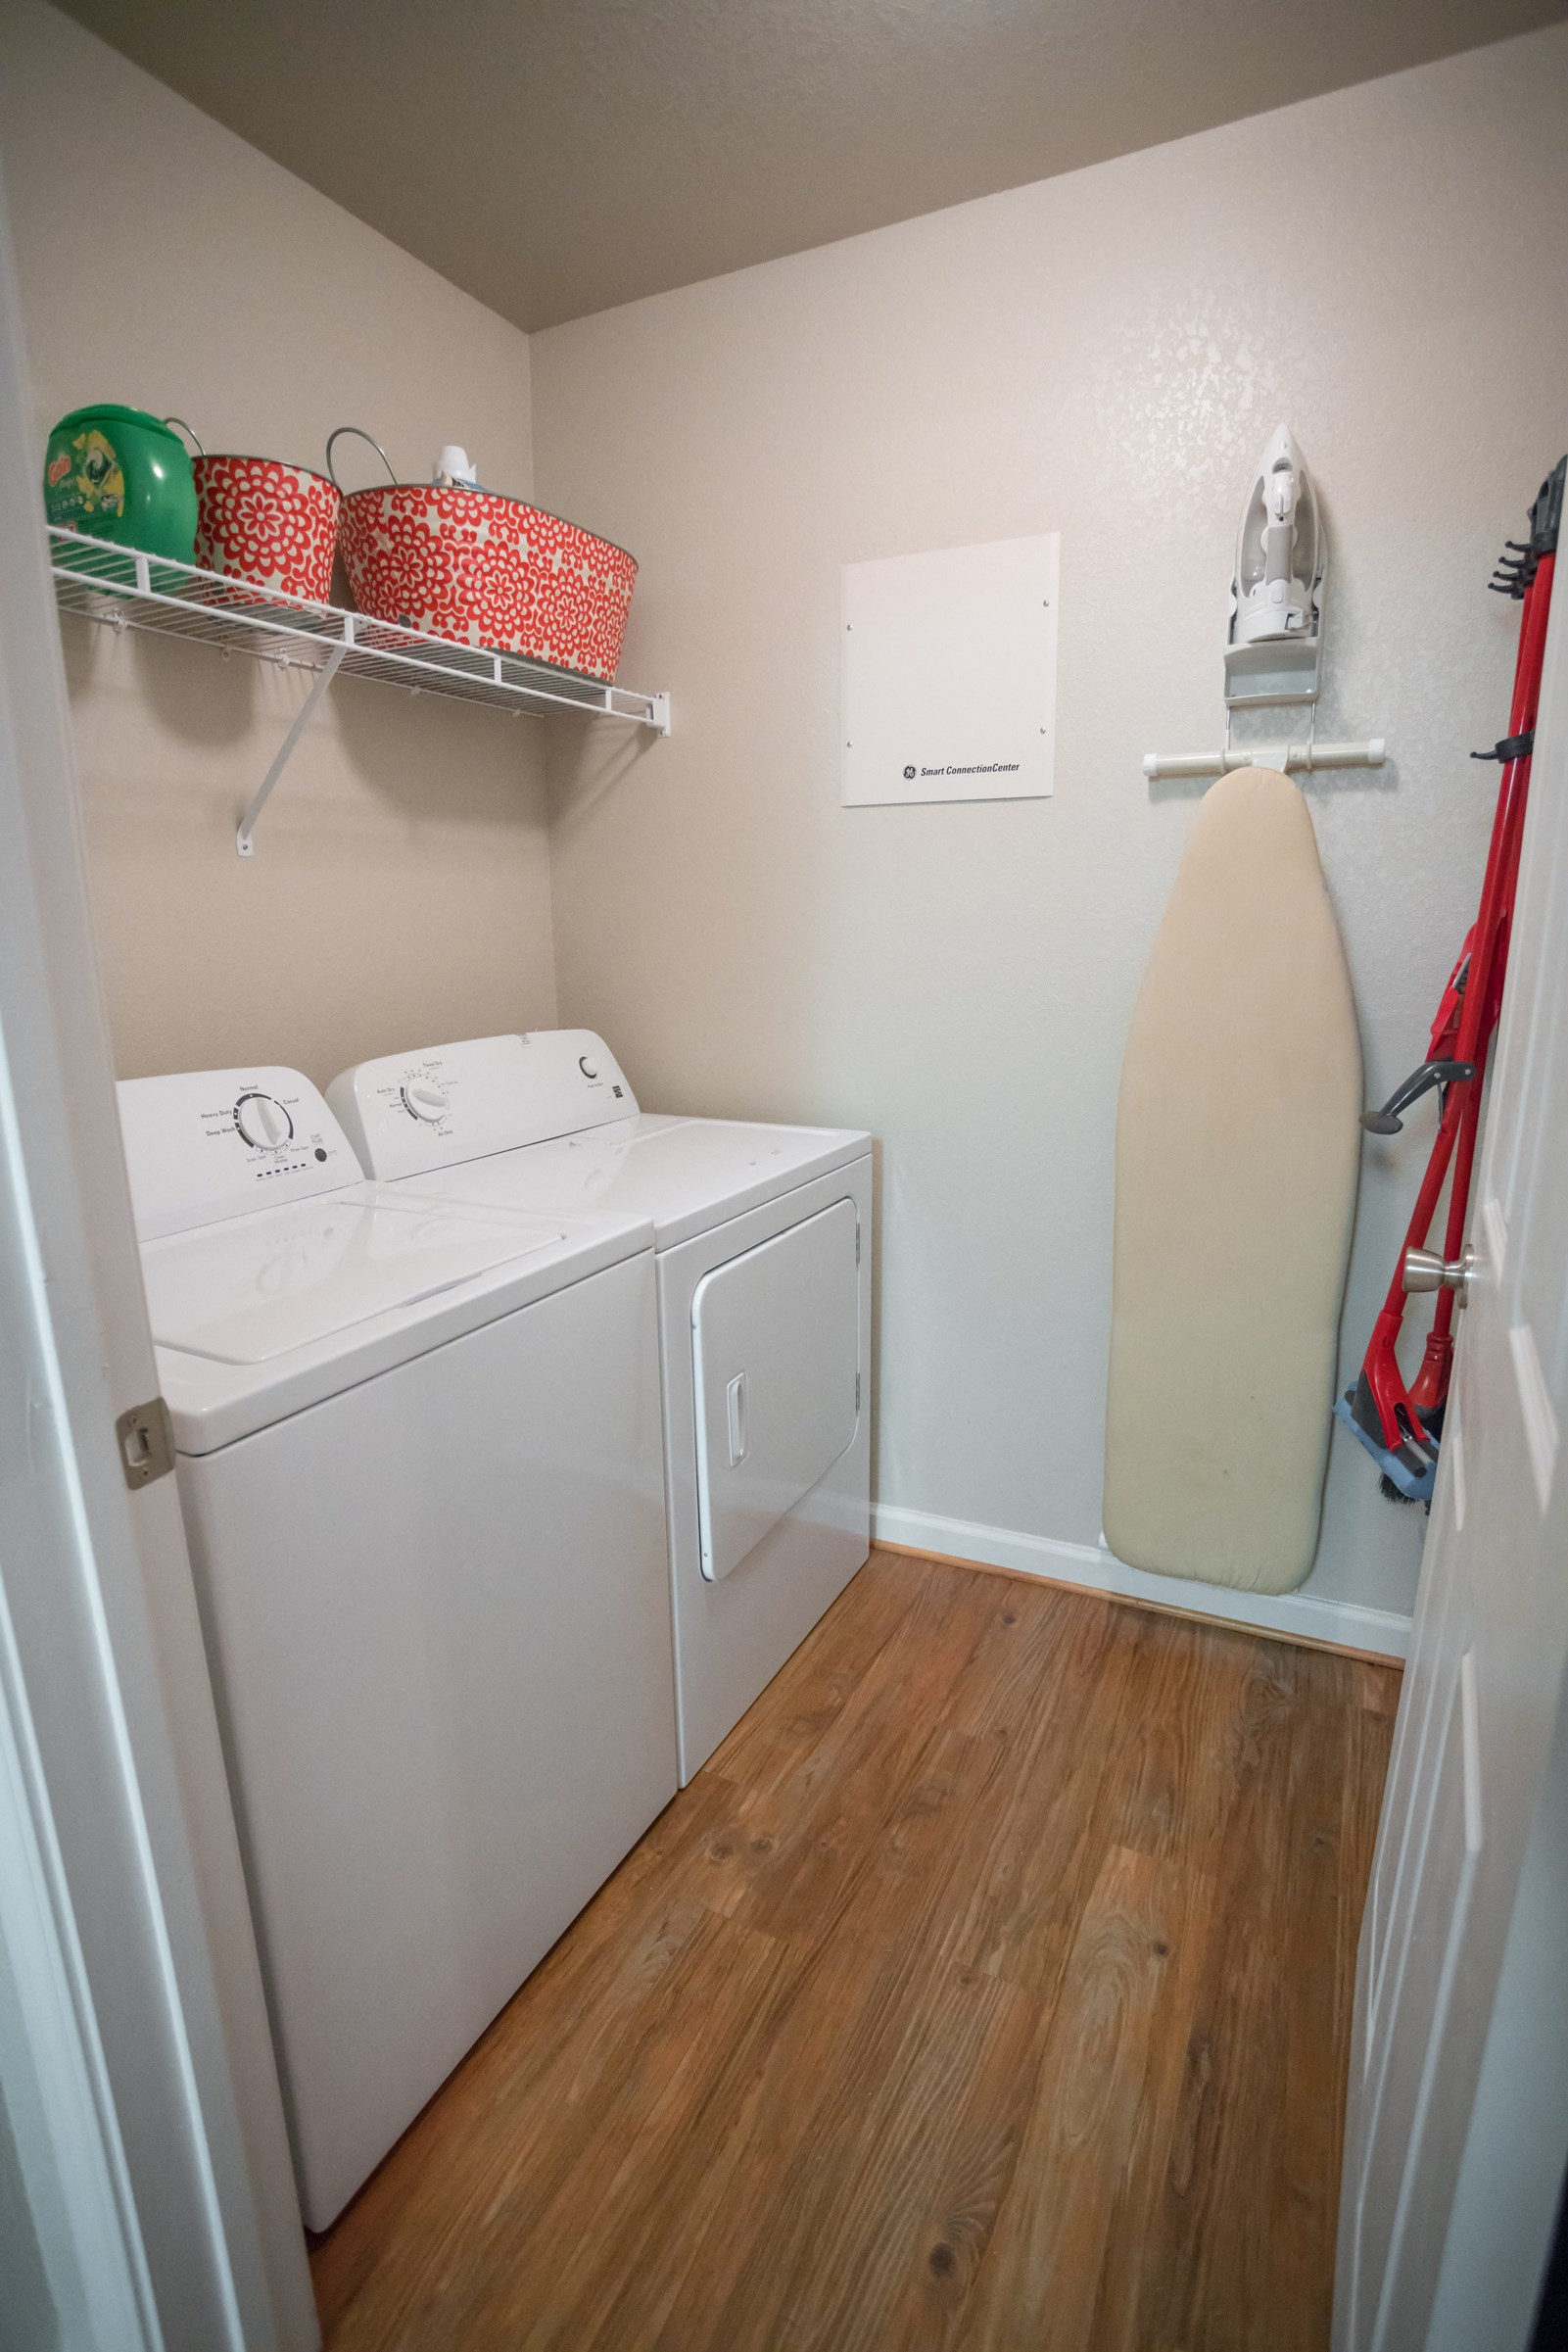 Laundry Room at Verandas at Taylor Oaks Apartments in Montgomery, AL